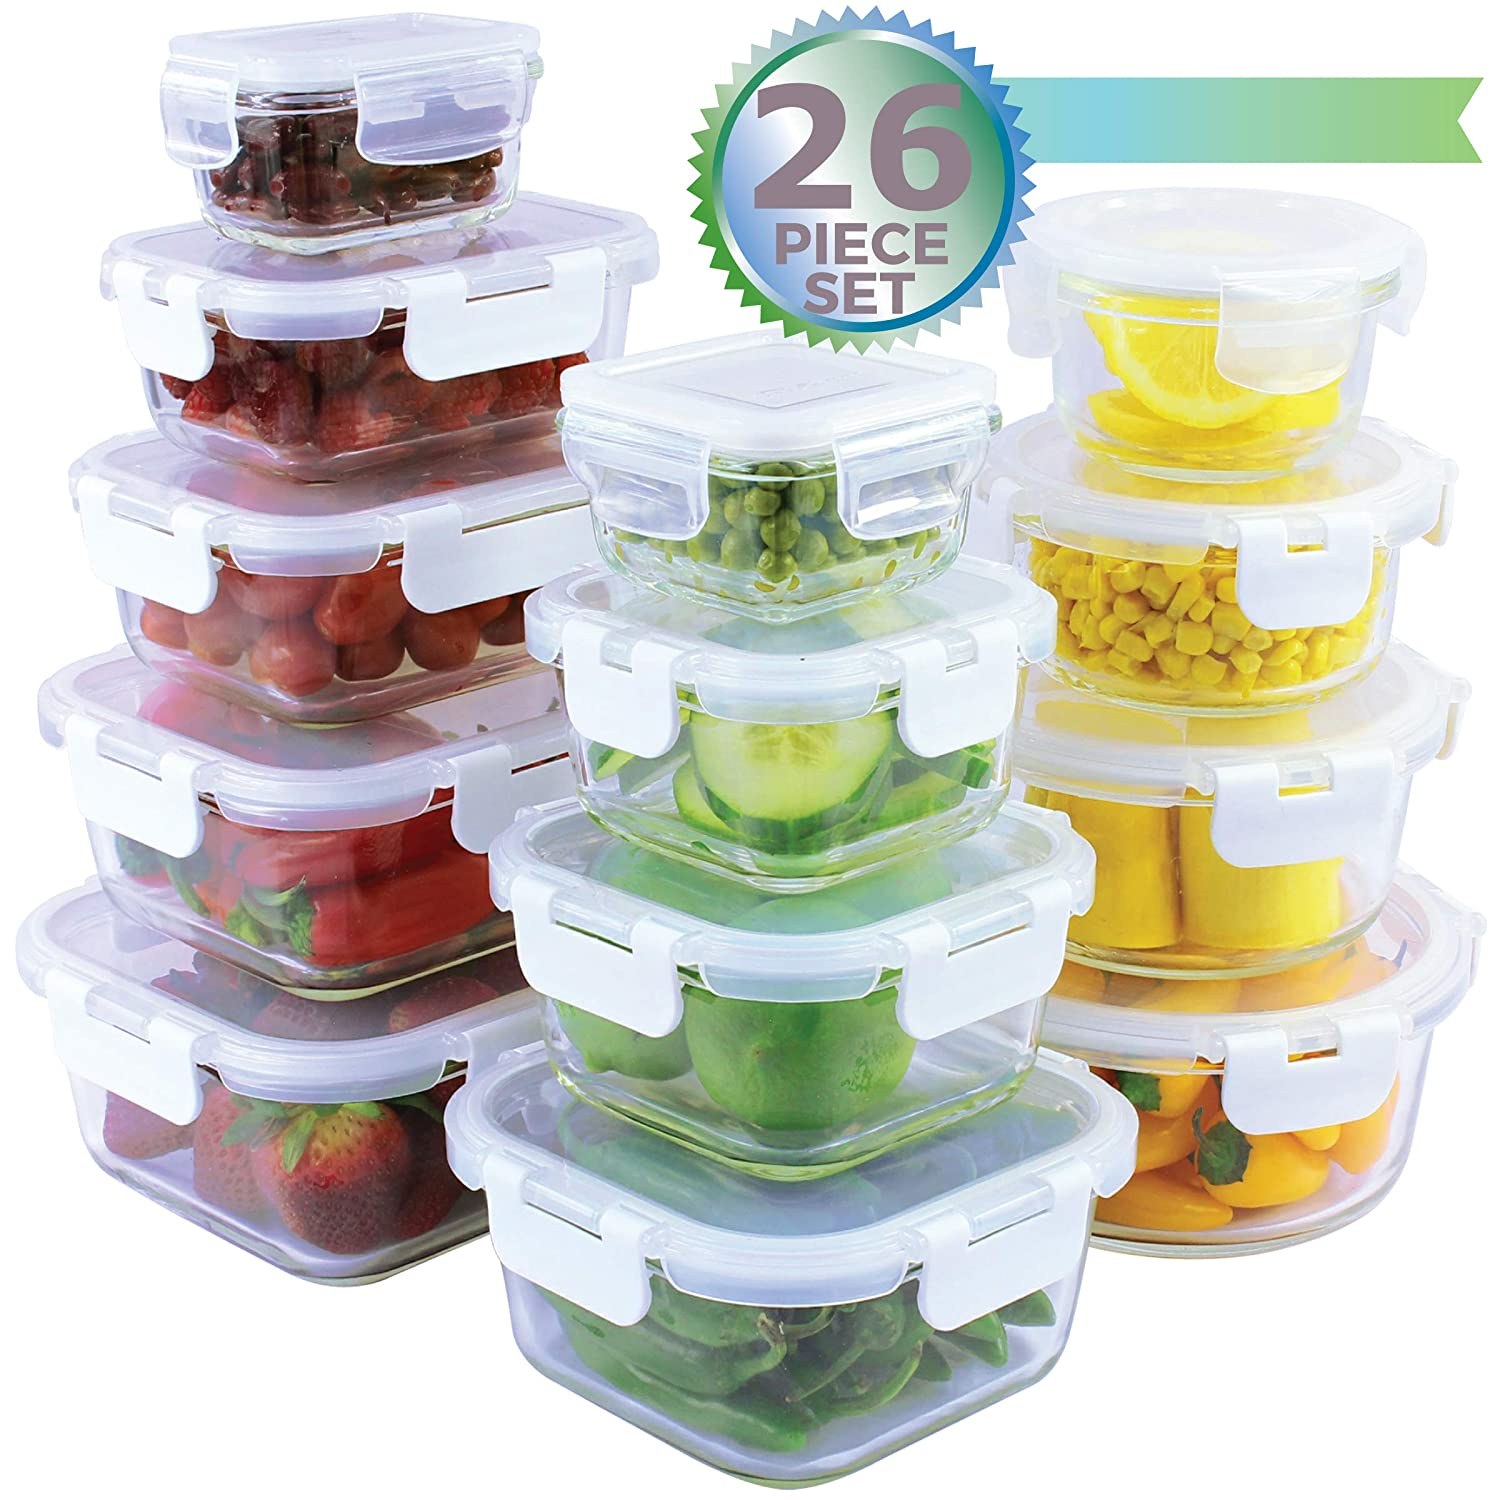 [26-Piece Set] Glass Storage Containers with Lids - Glass Food Storage Containers Airtight - Glass Containers With Lids - Glass Meal Prep Containers Glass Food Containers - Glass Lunch Containers